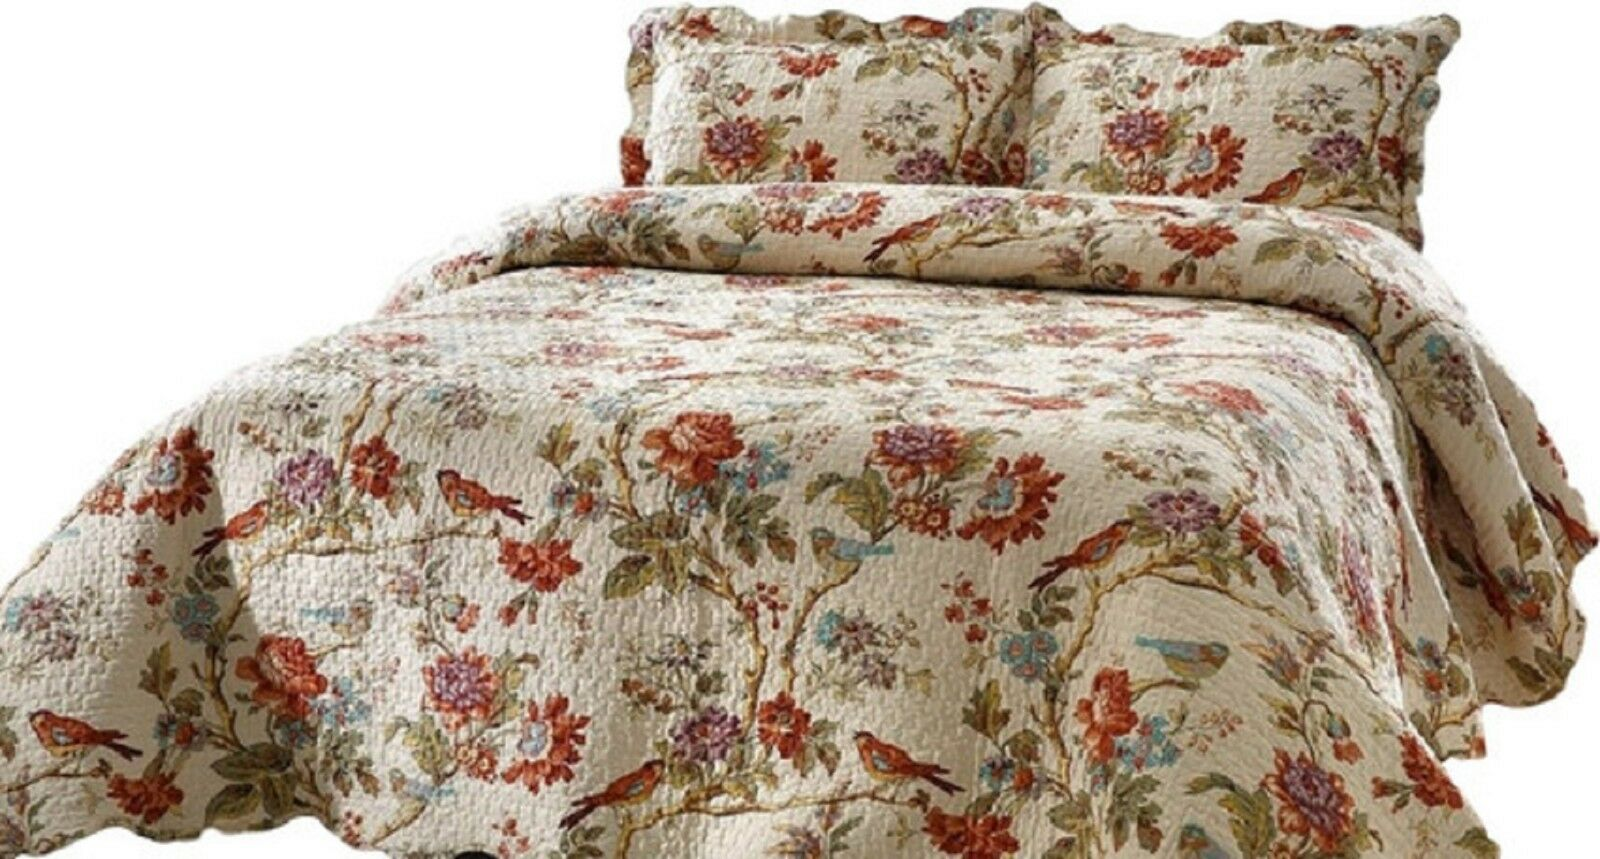 Patch Magic Quilt Set Oversized Finch Orchard Bed in a Bag Set KING Size  NEW Bed-in-a-Bag